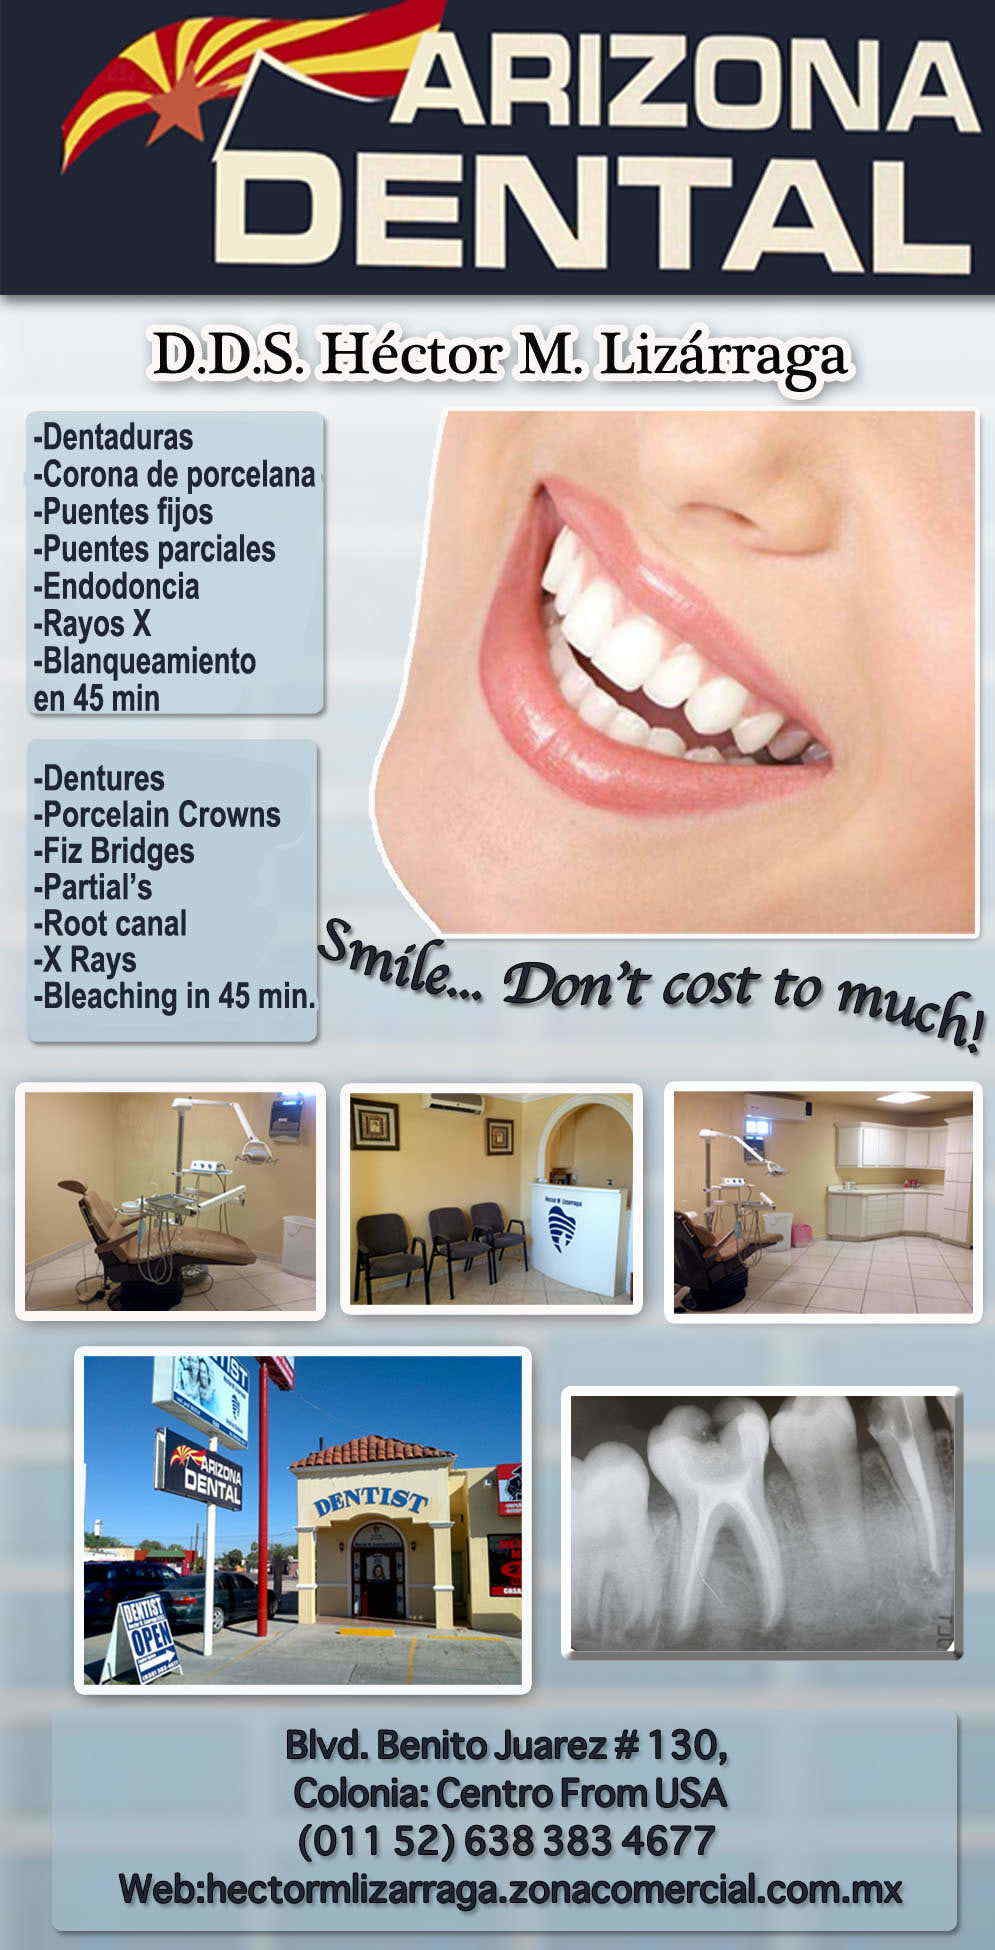 Arizona Dental DDS. Hector M. Lizarraga-Odontologia Familiar